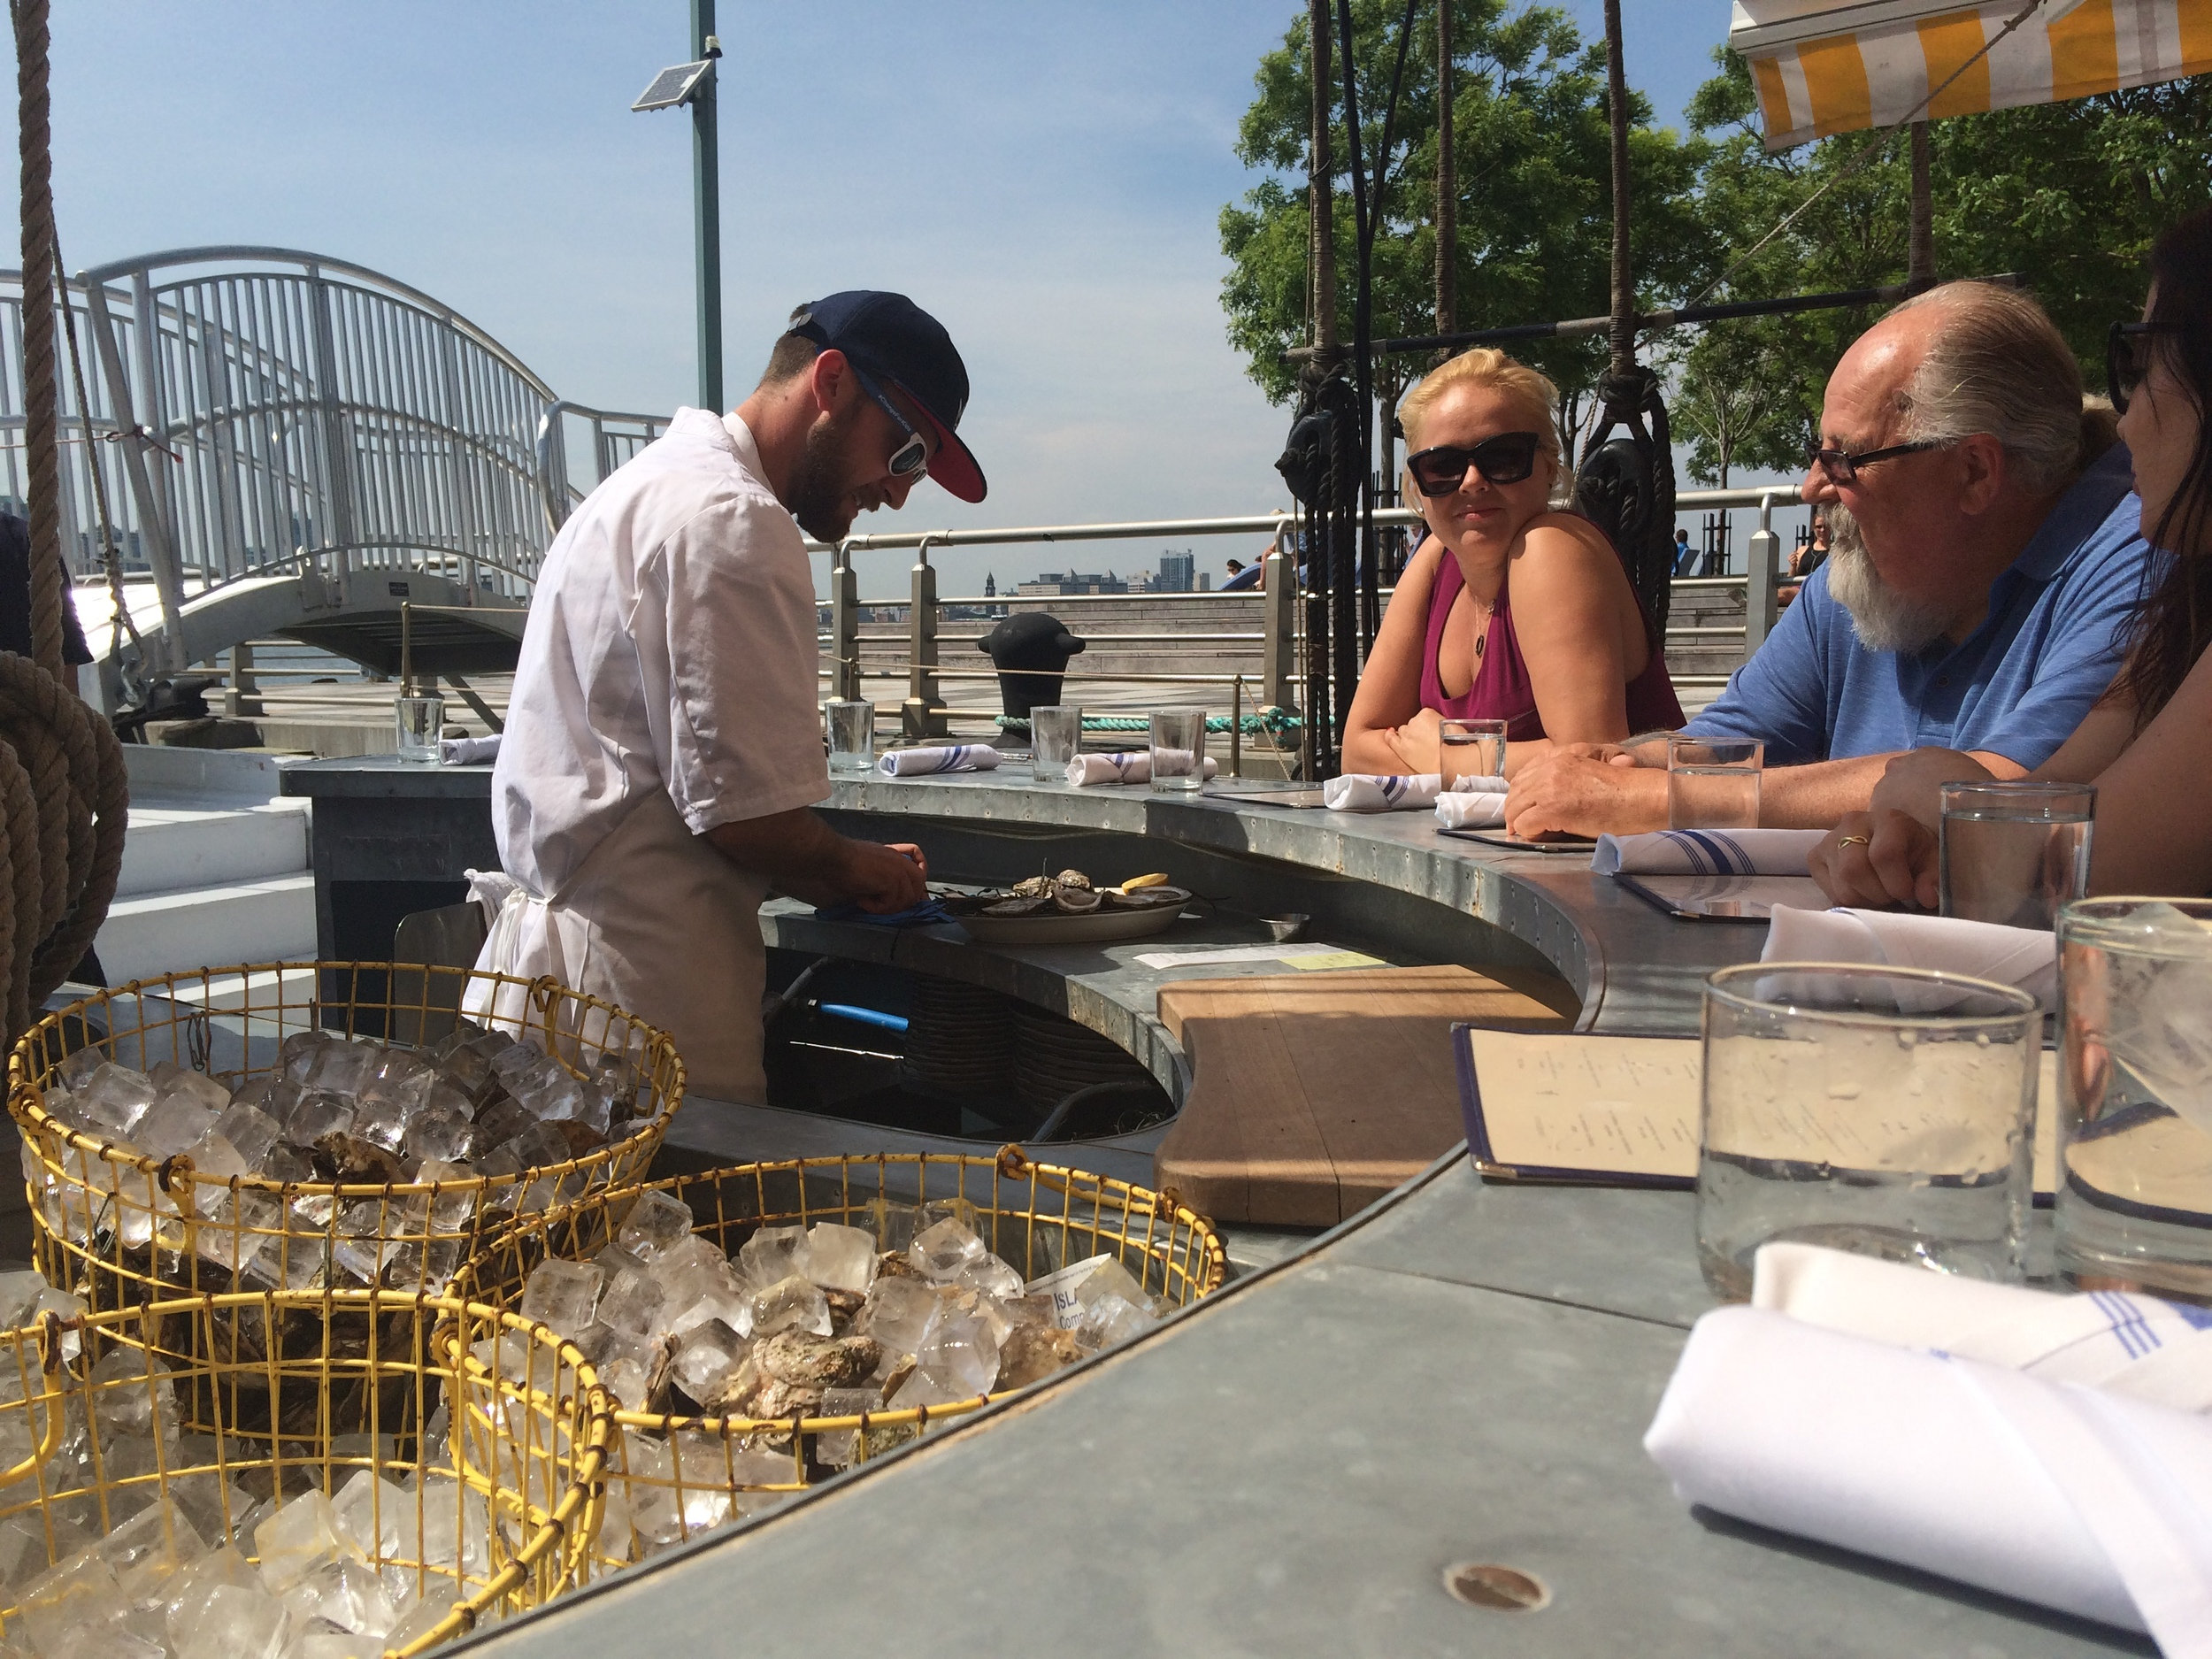 Oysters are shucked to order by a cook behind the raw bar.